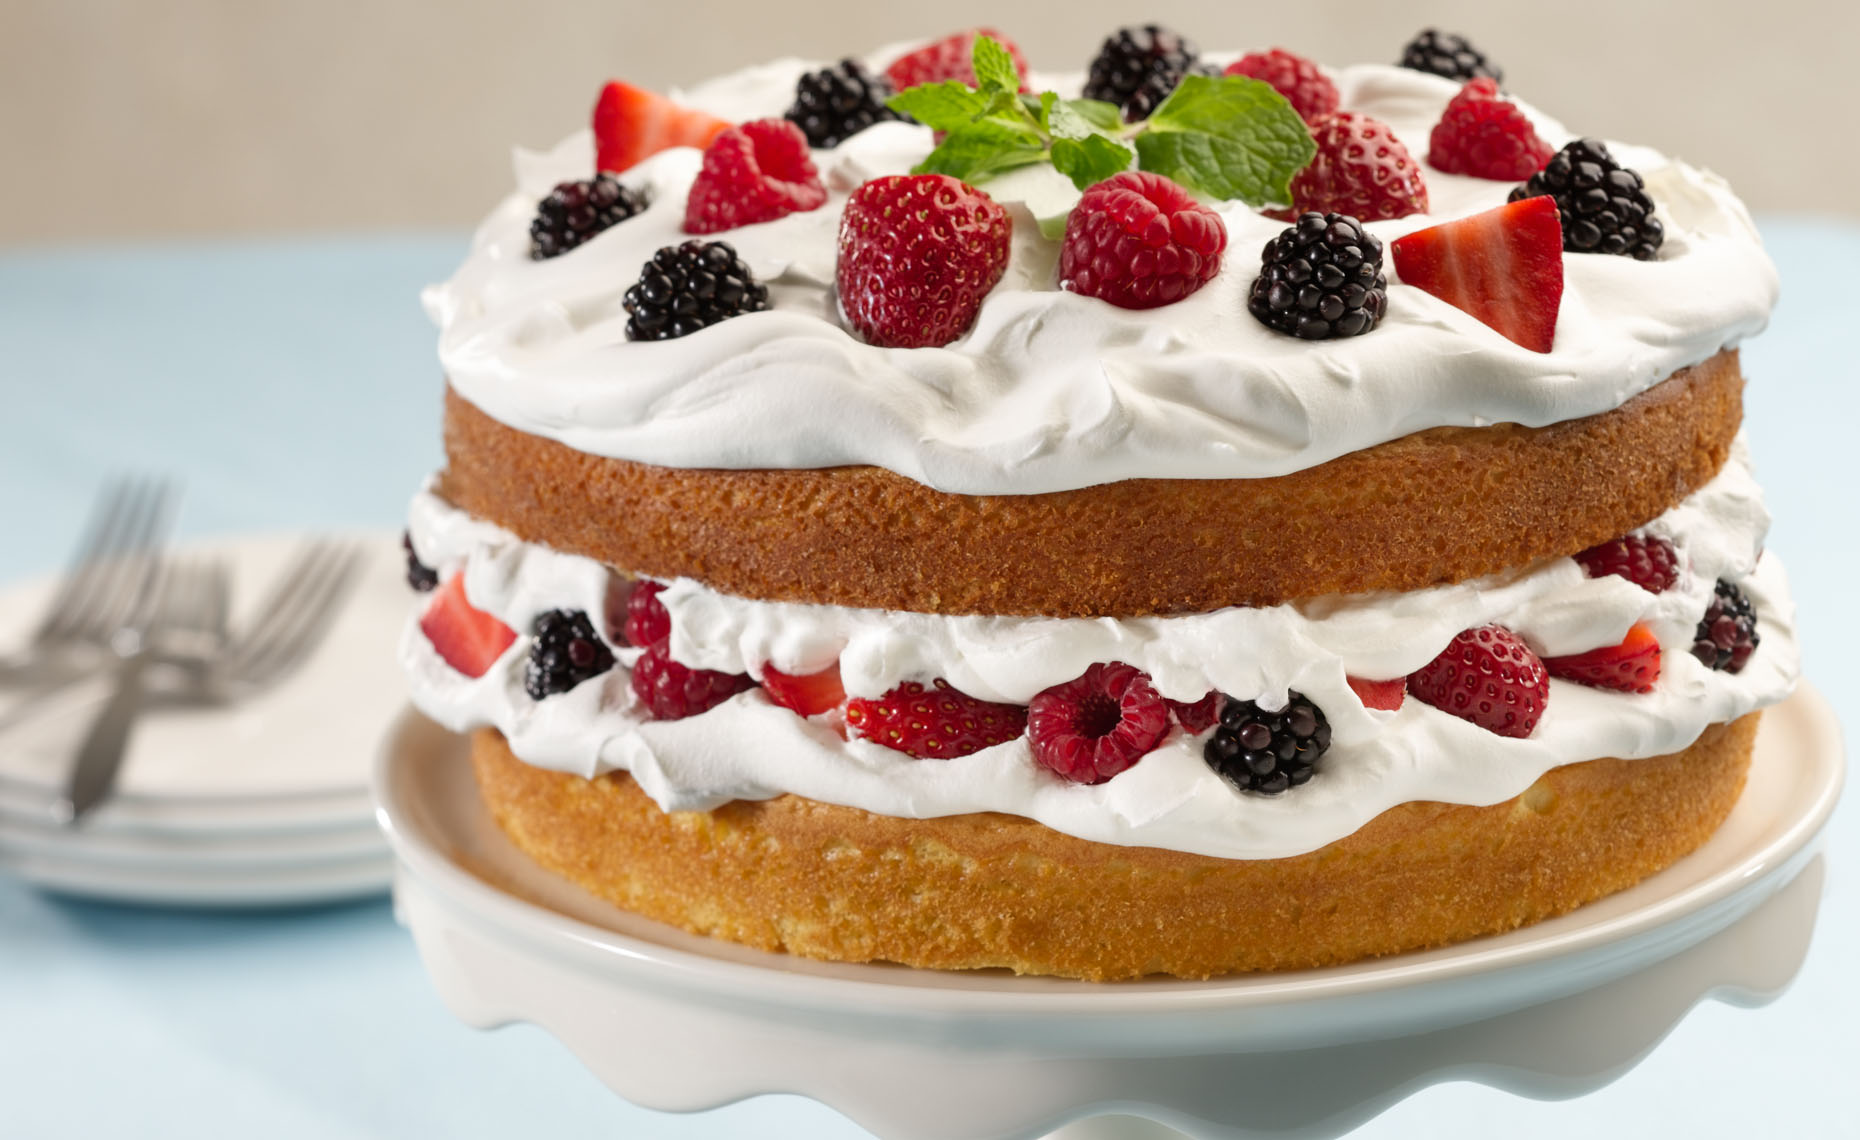 Hood Layer Cakes with Berries Dessert Photo